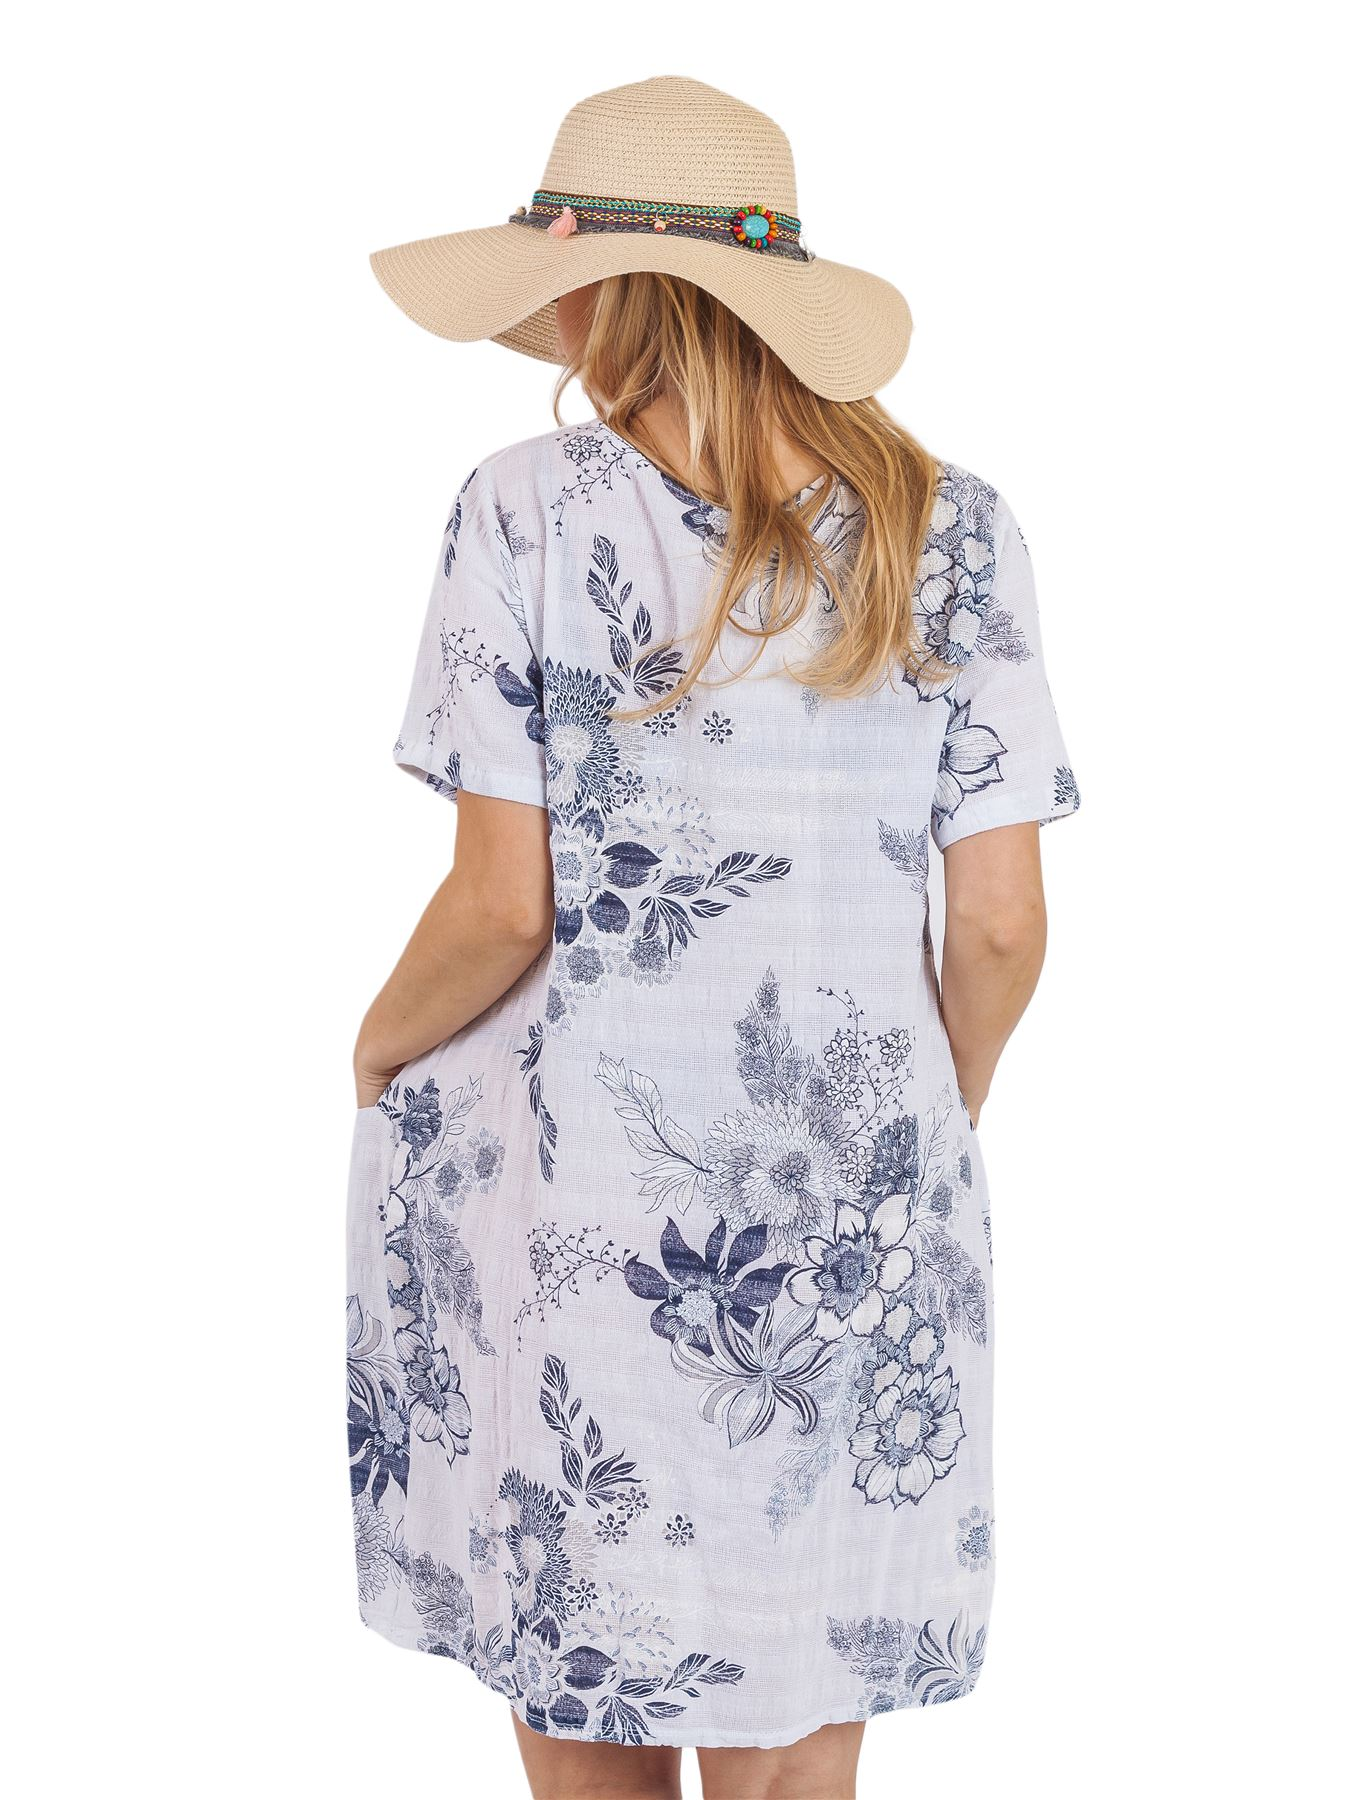 Women-Floral-Print-Italian-Fashion-Lagenlook-Ladies-Summer-Shift-Dress-Crew-Neck thumbnail 25